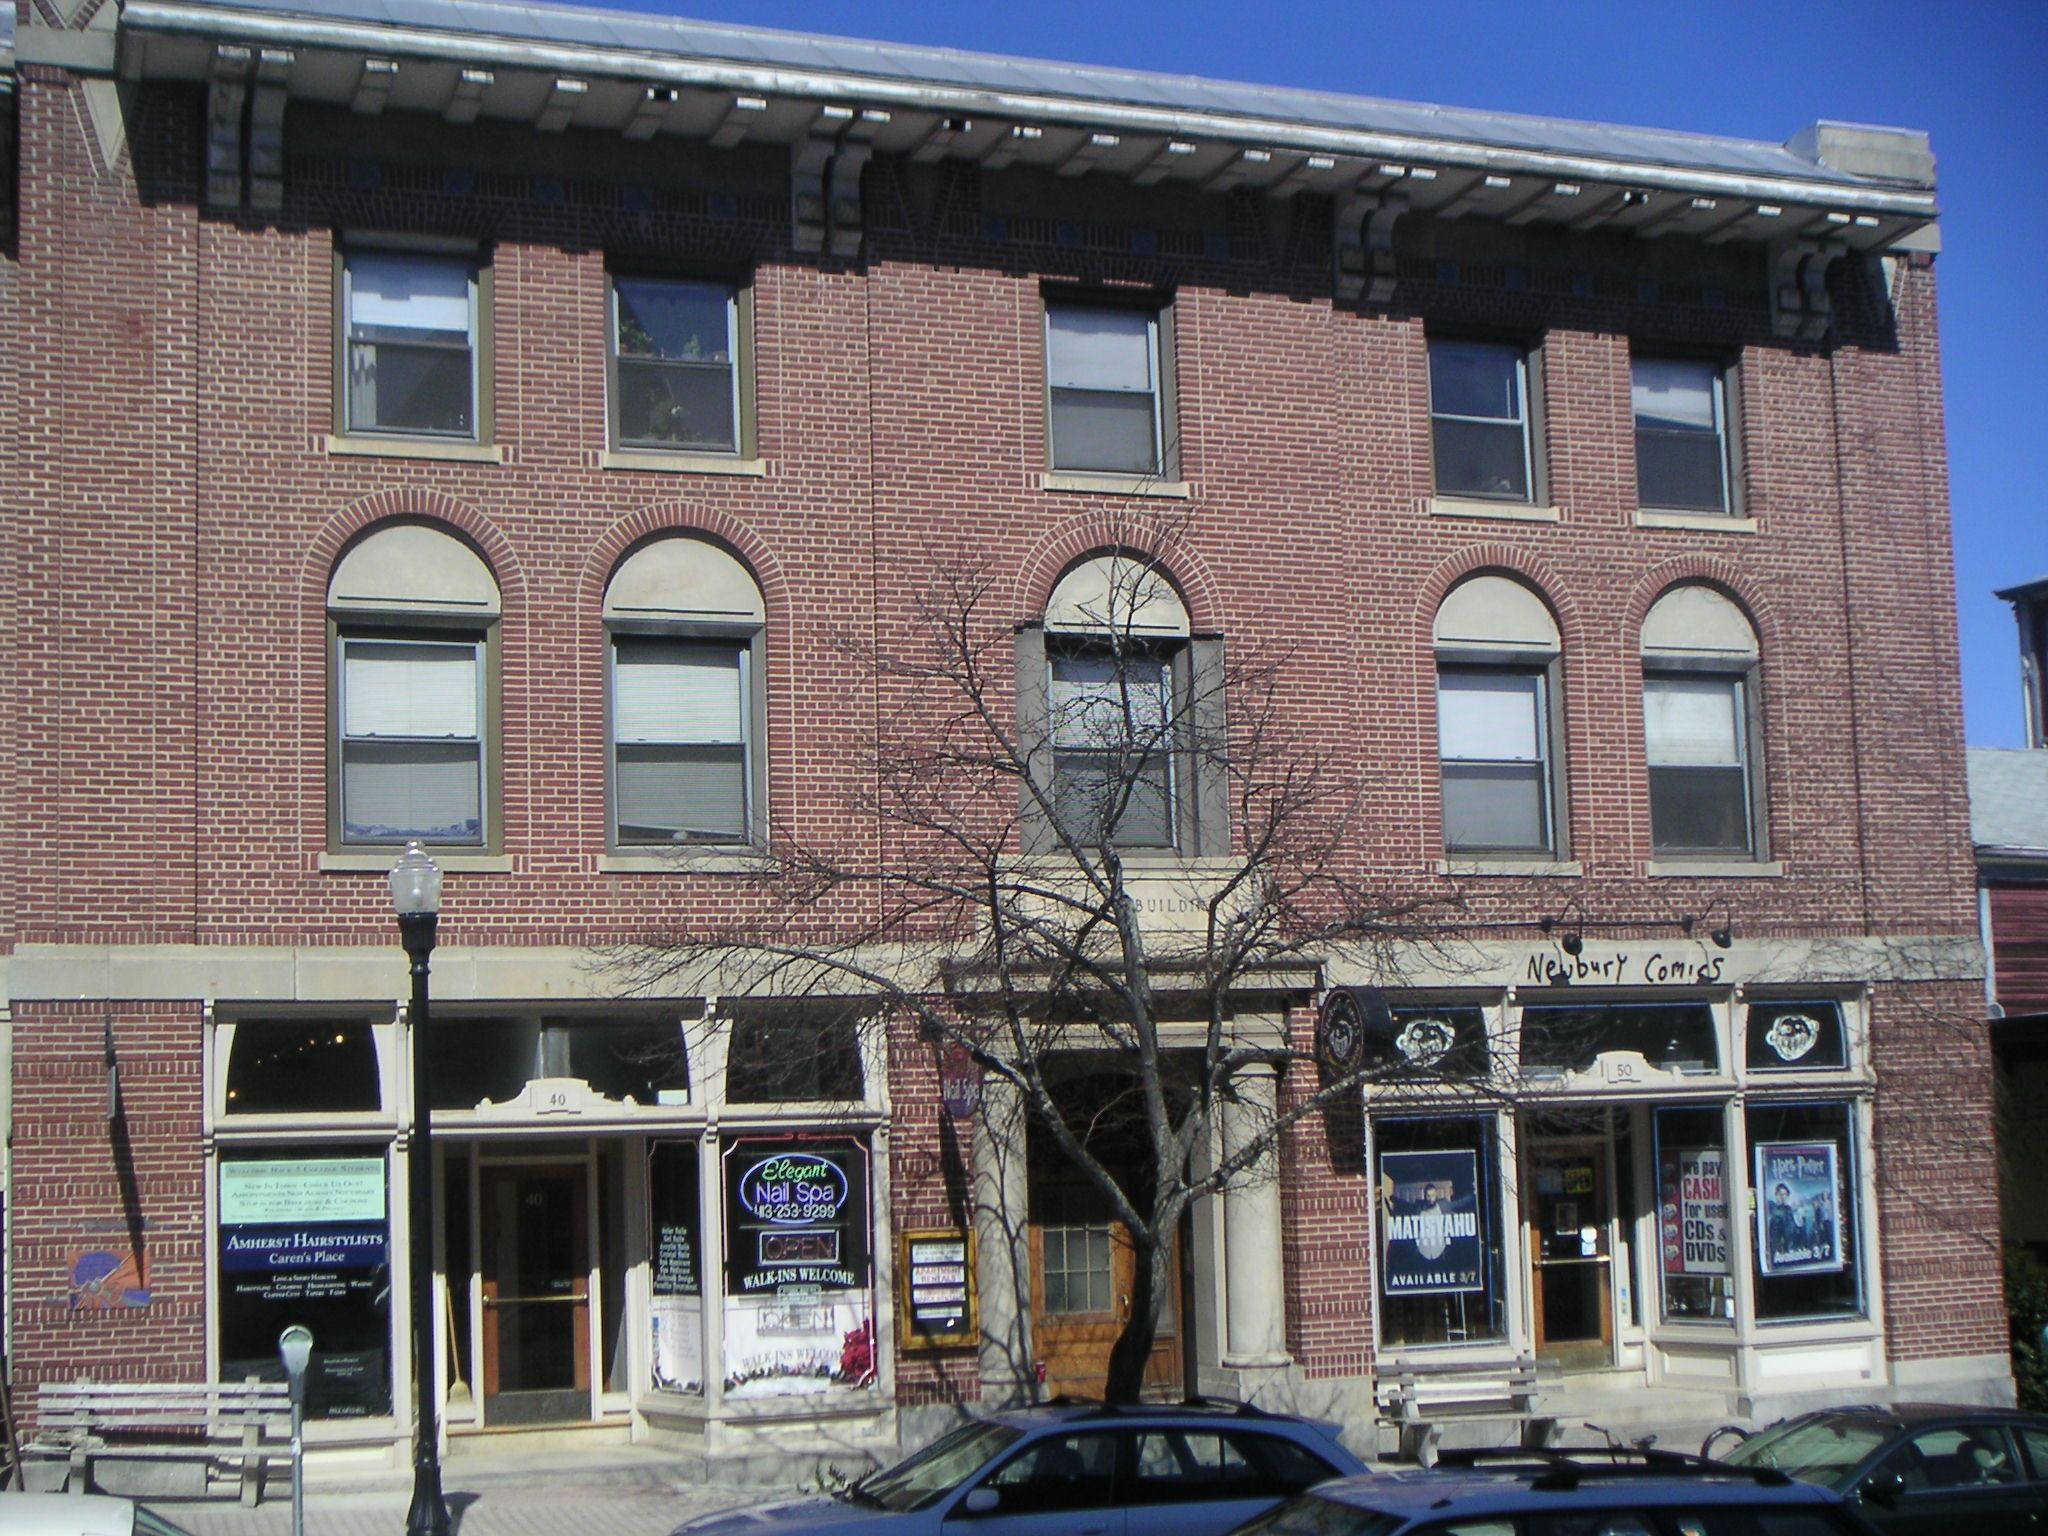 46 Main St Amherst Ma We Are Renting The Units Above The Commercial Space For June 1 Call Us To Sch Commercial Real Estate Real Estate Apartments For Rent